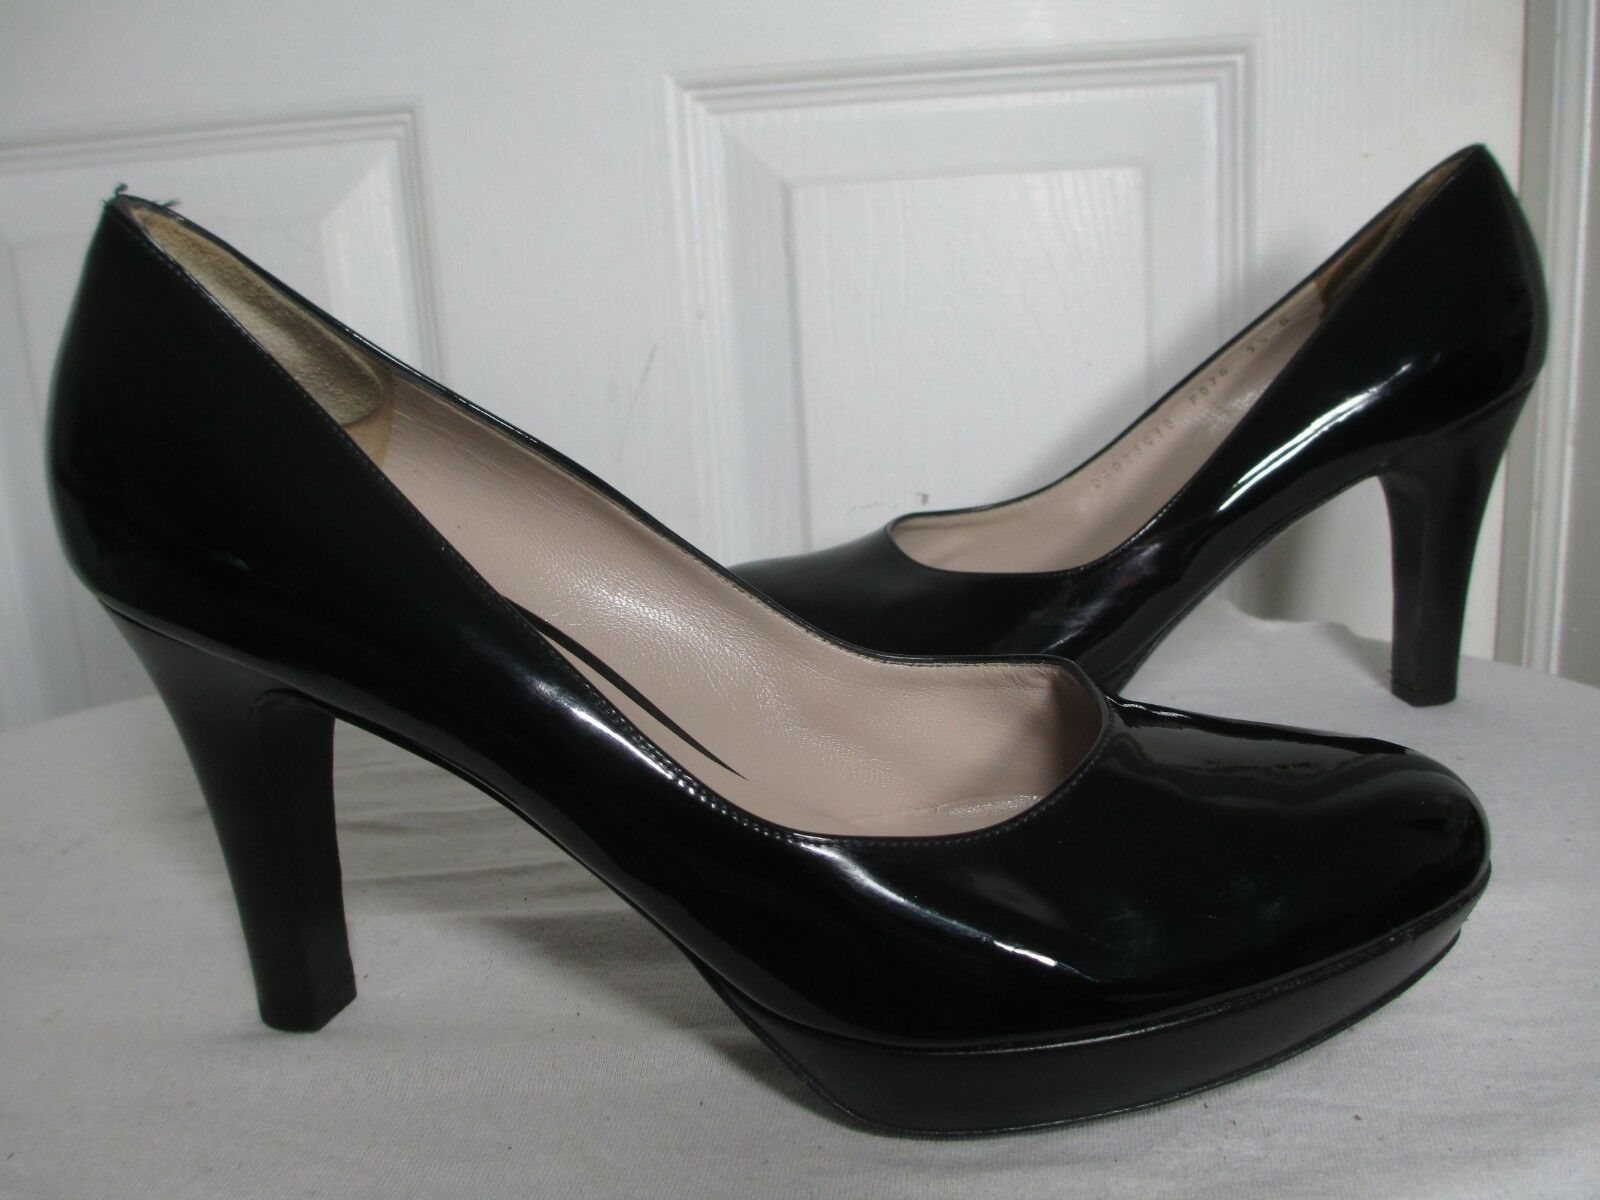 SALVATORE FERRAGAMO BLACK PATENT LEATHER PLATFORM CLASSIC PUMPS HEELS 9½ B